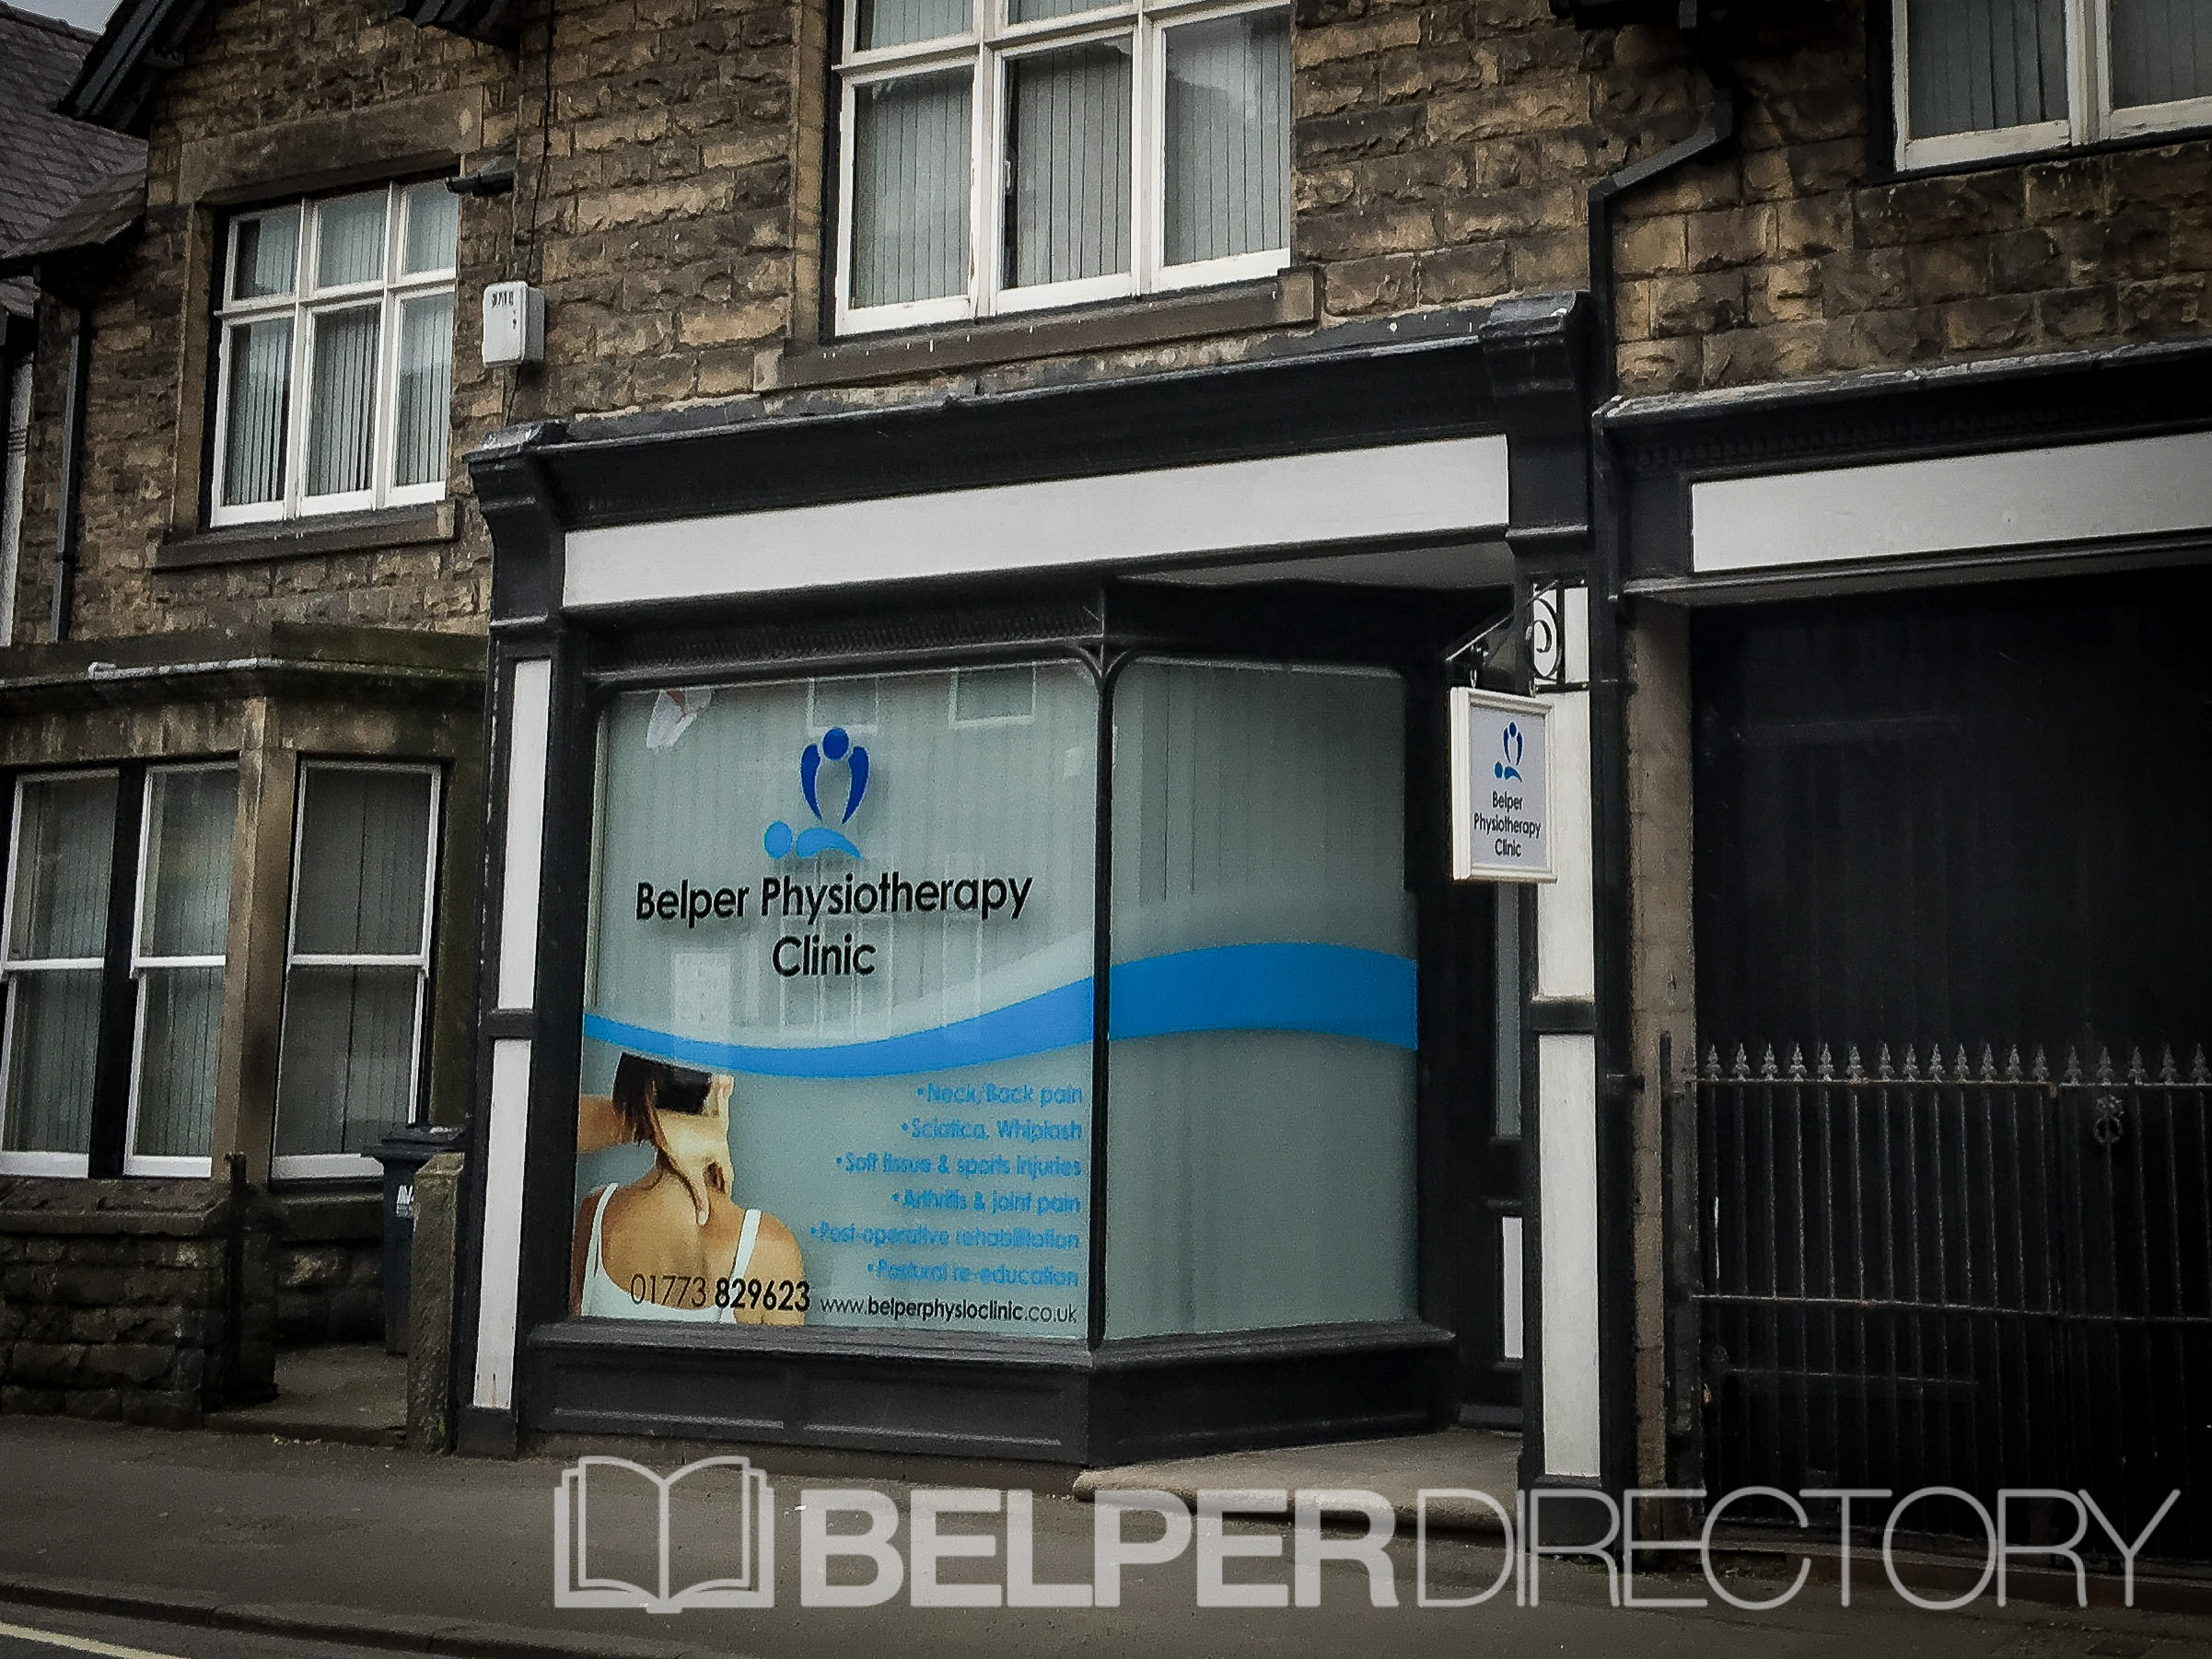 Belper Physiotherapy Clinic on Inter Search